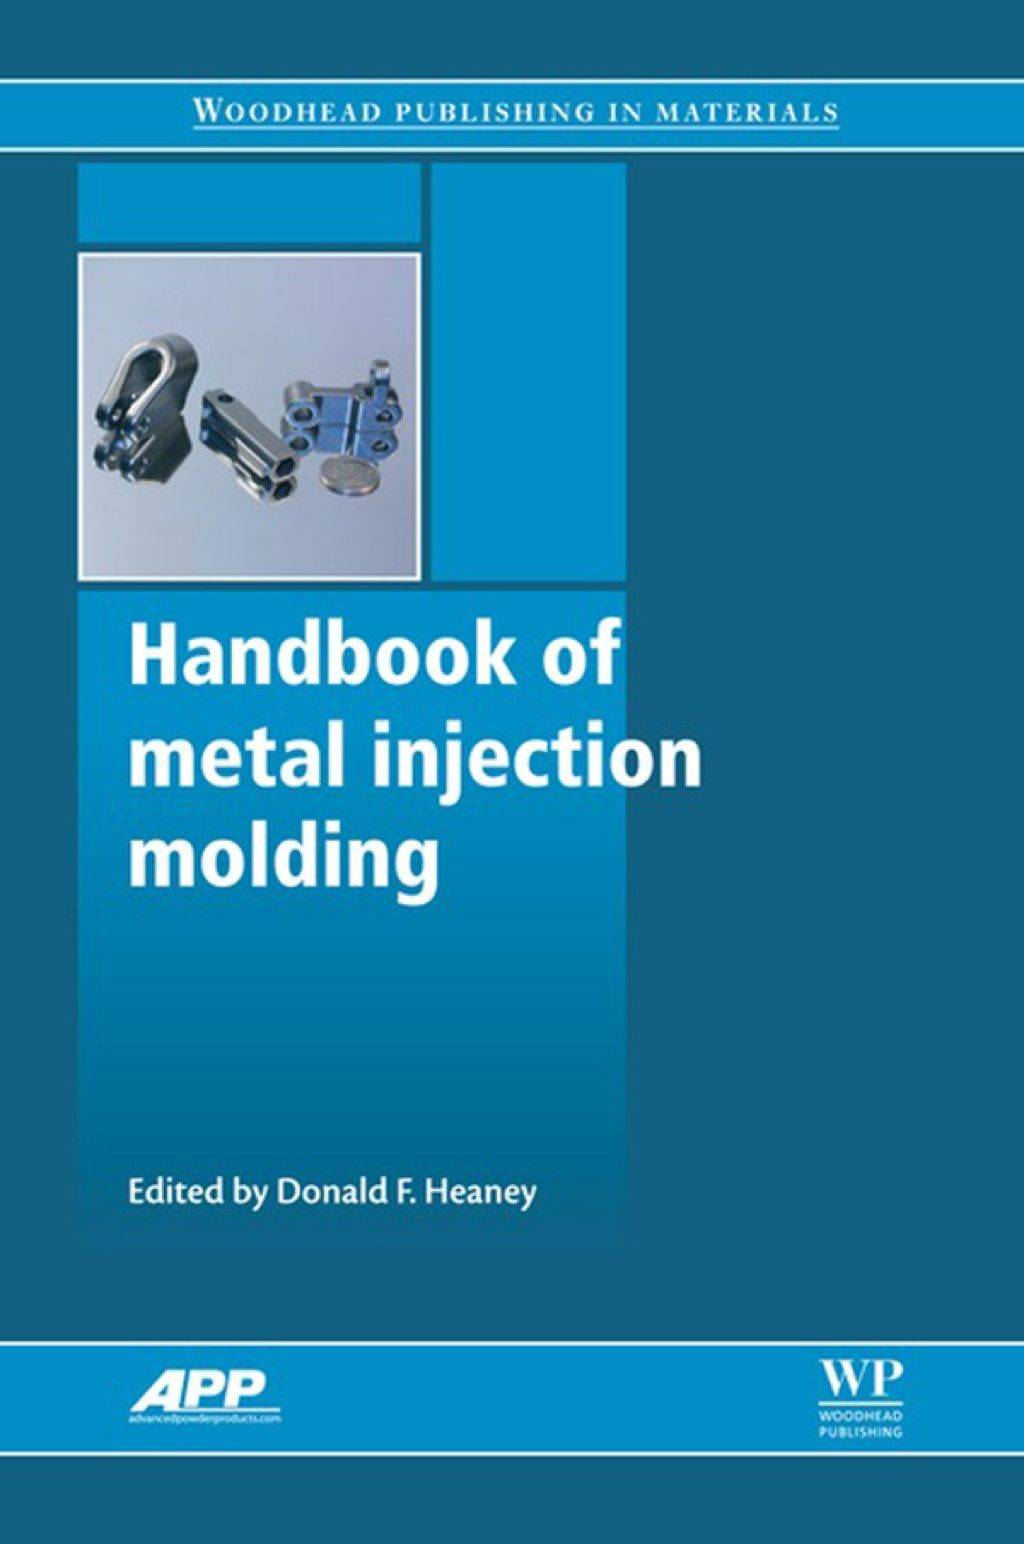 Pin By Ted On Injection Moulding Process In 2020 Injection